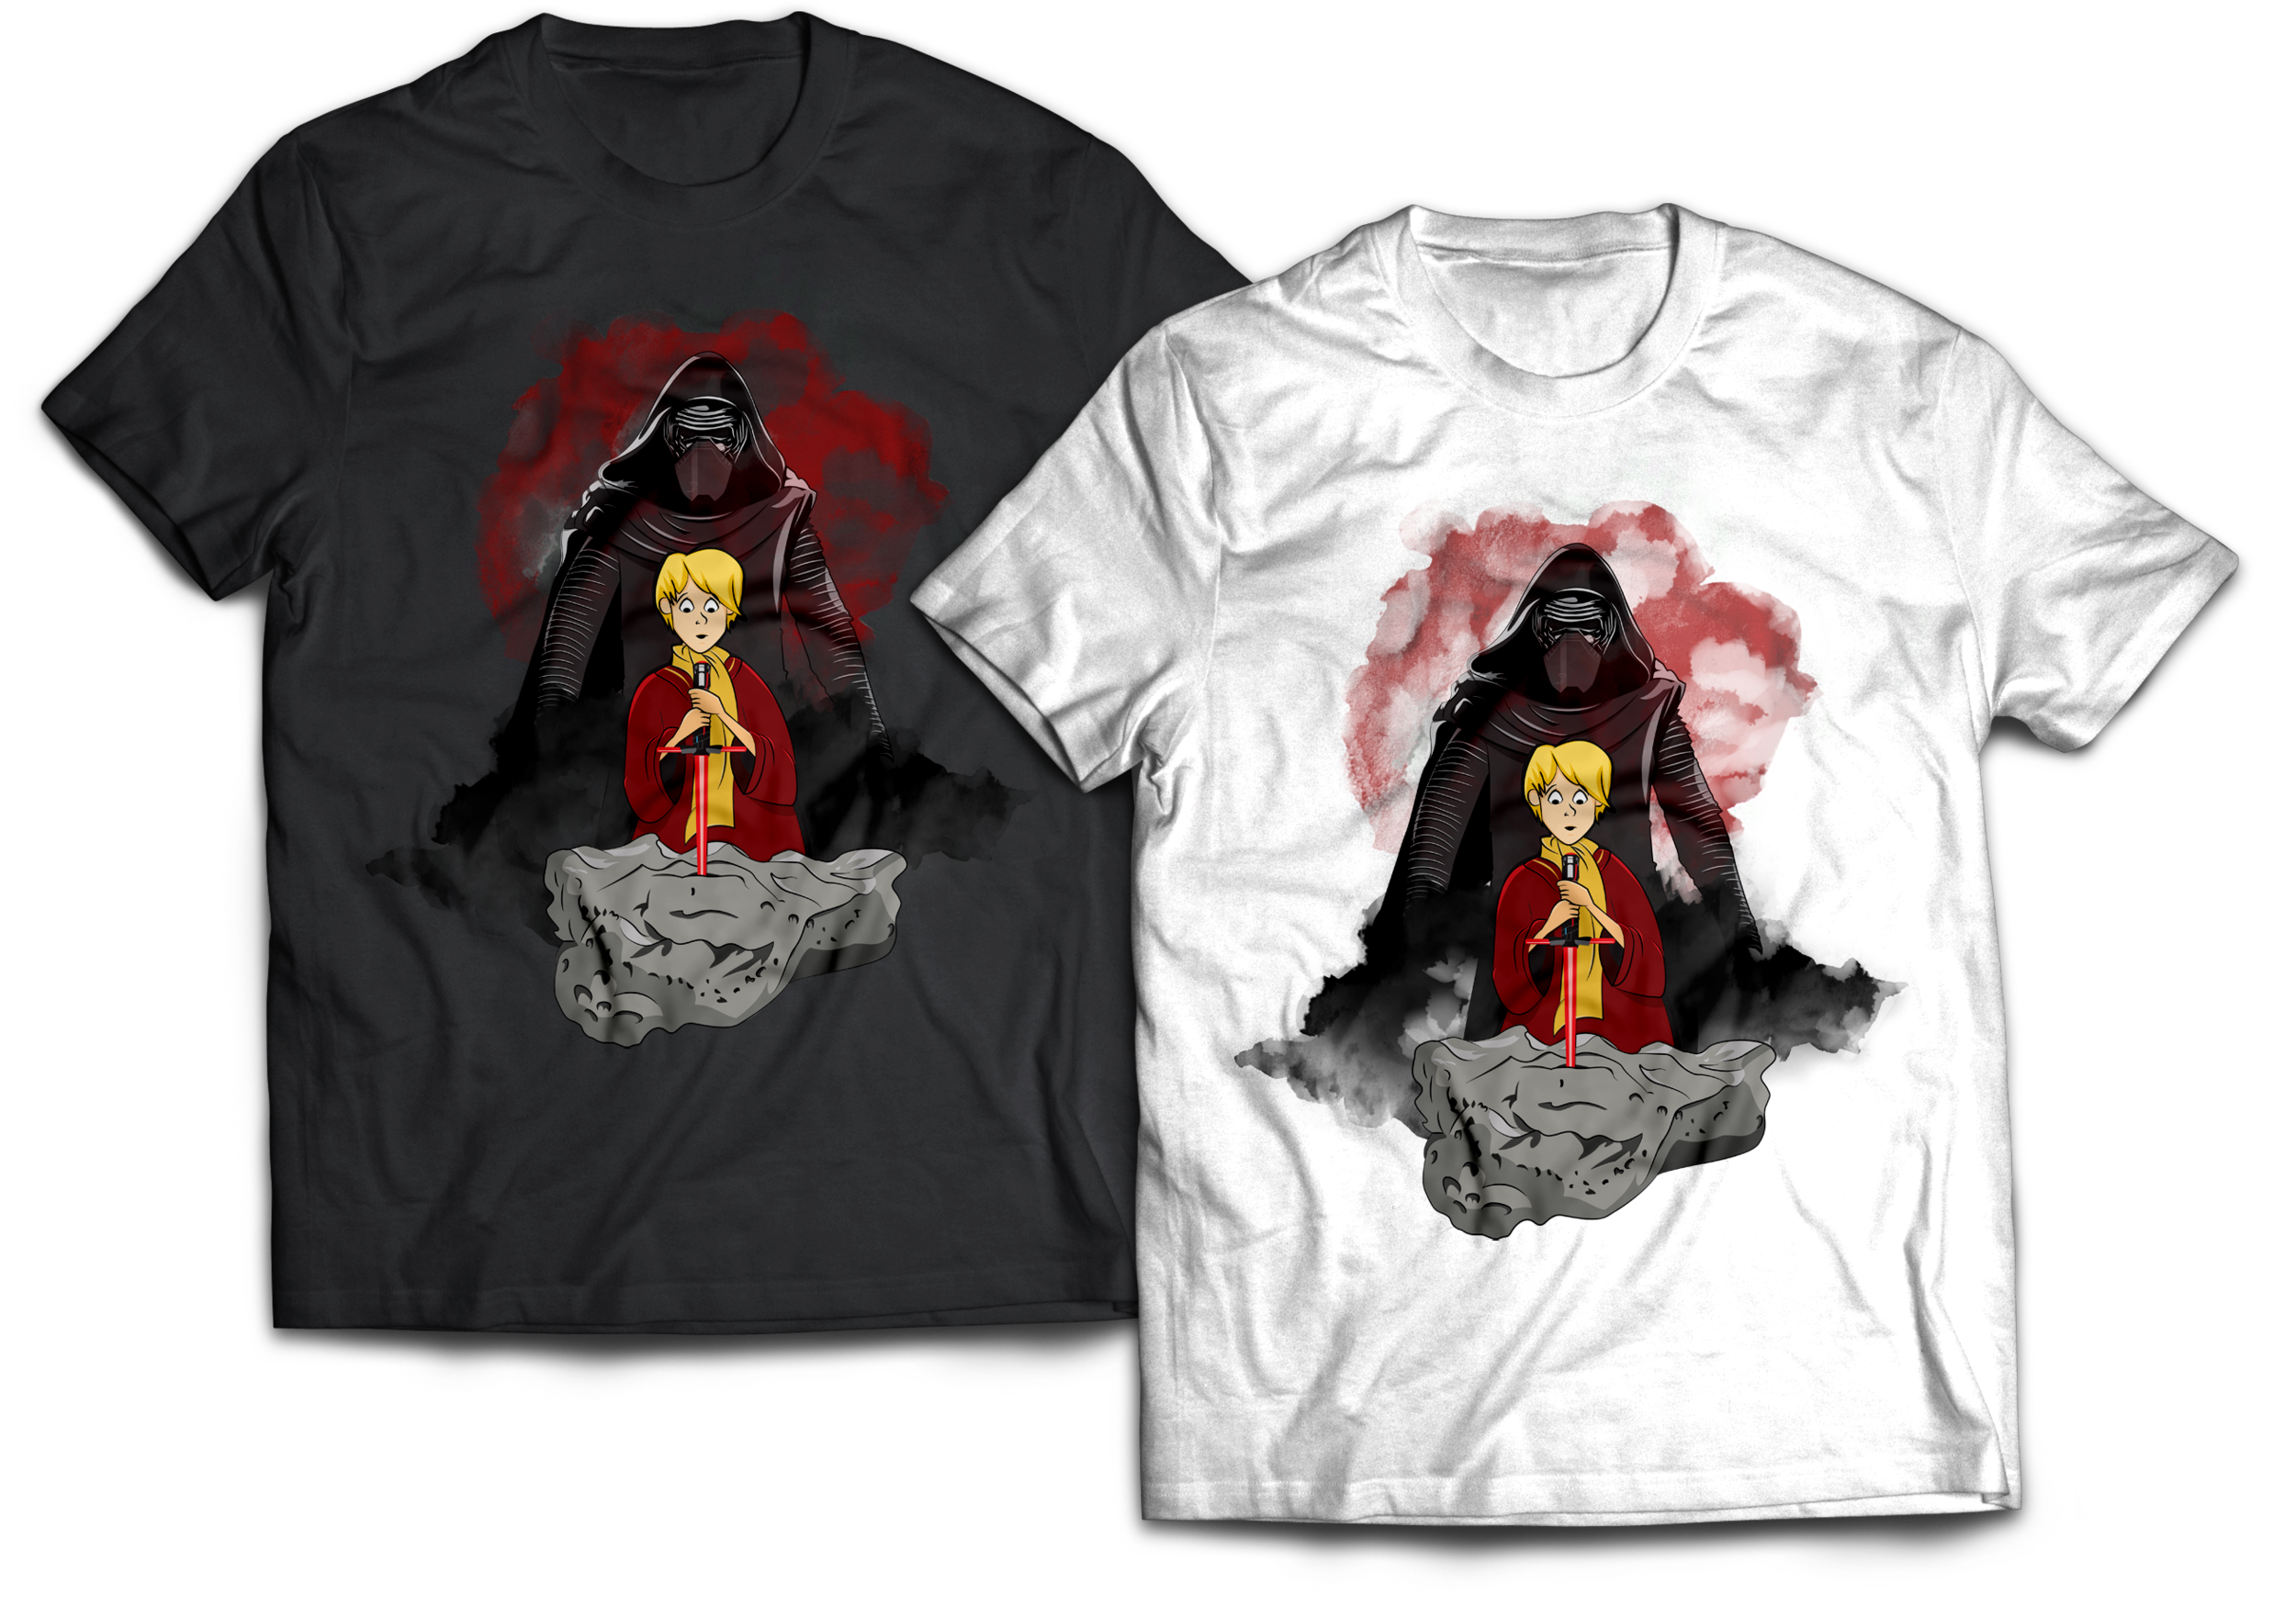 Whoso Pulleth this Sword in the Stone Kylo Ren T-Shirt Jlane Design Teepublic